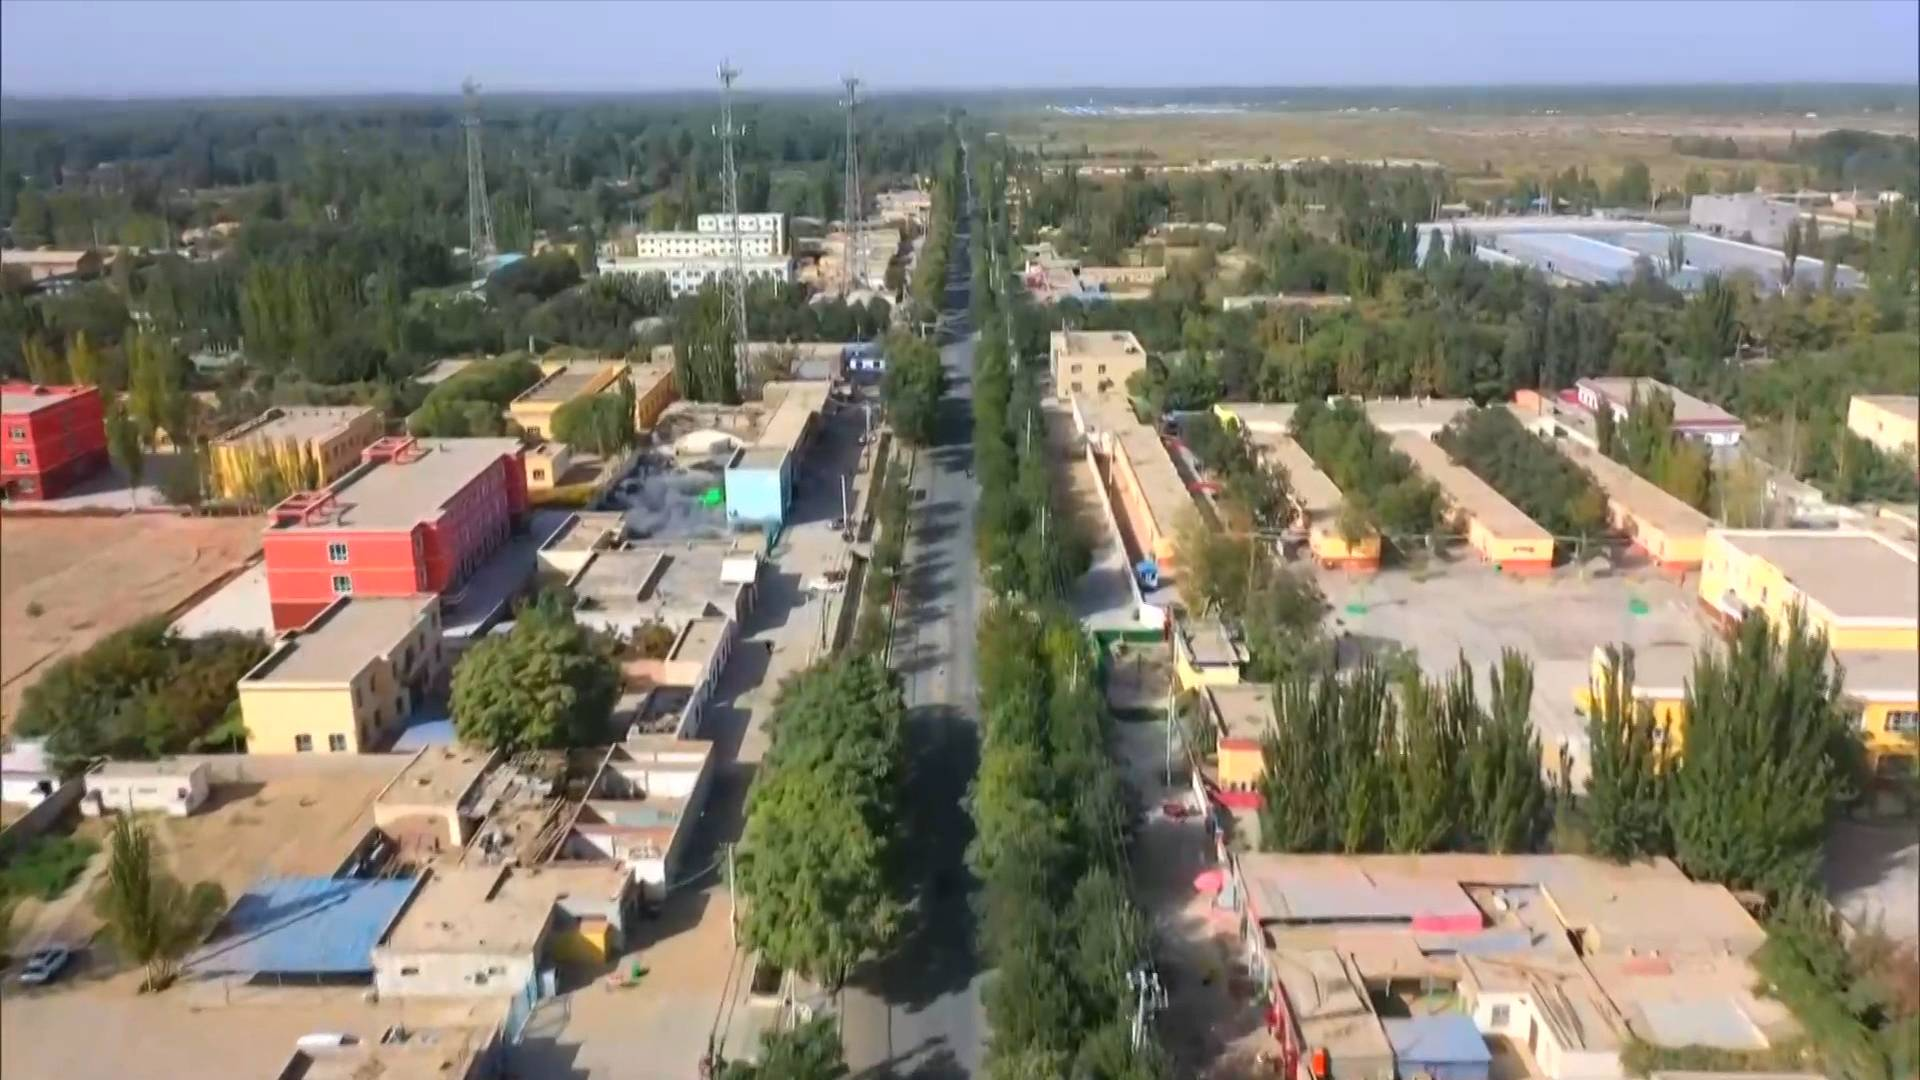 GLOBALink | China's Xinjiang out of absolute poverty: official